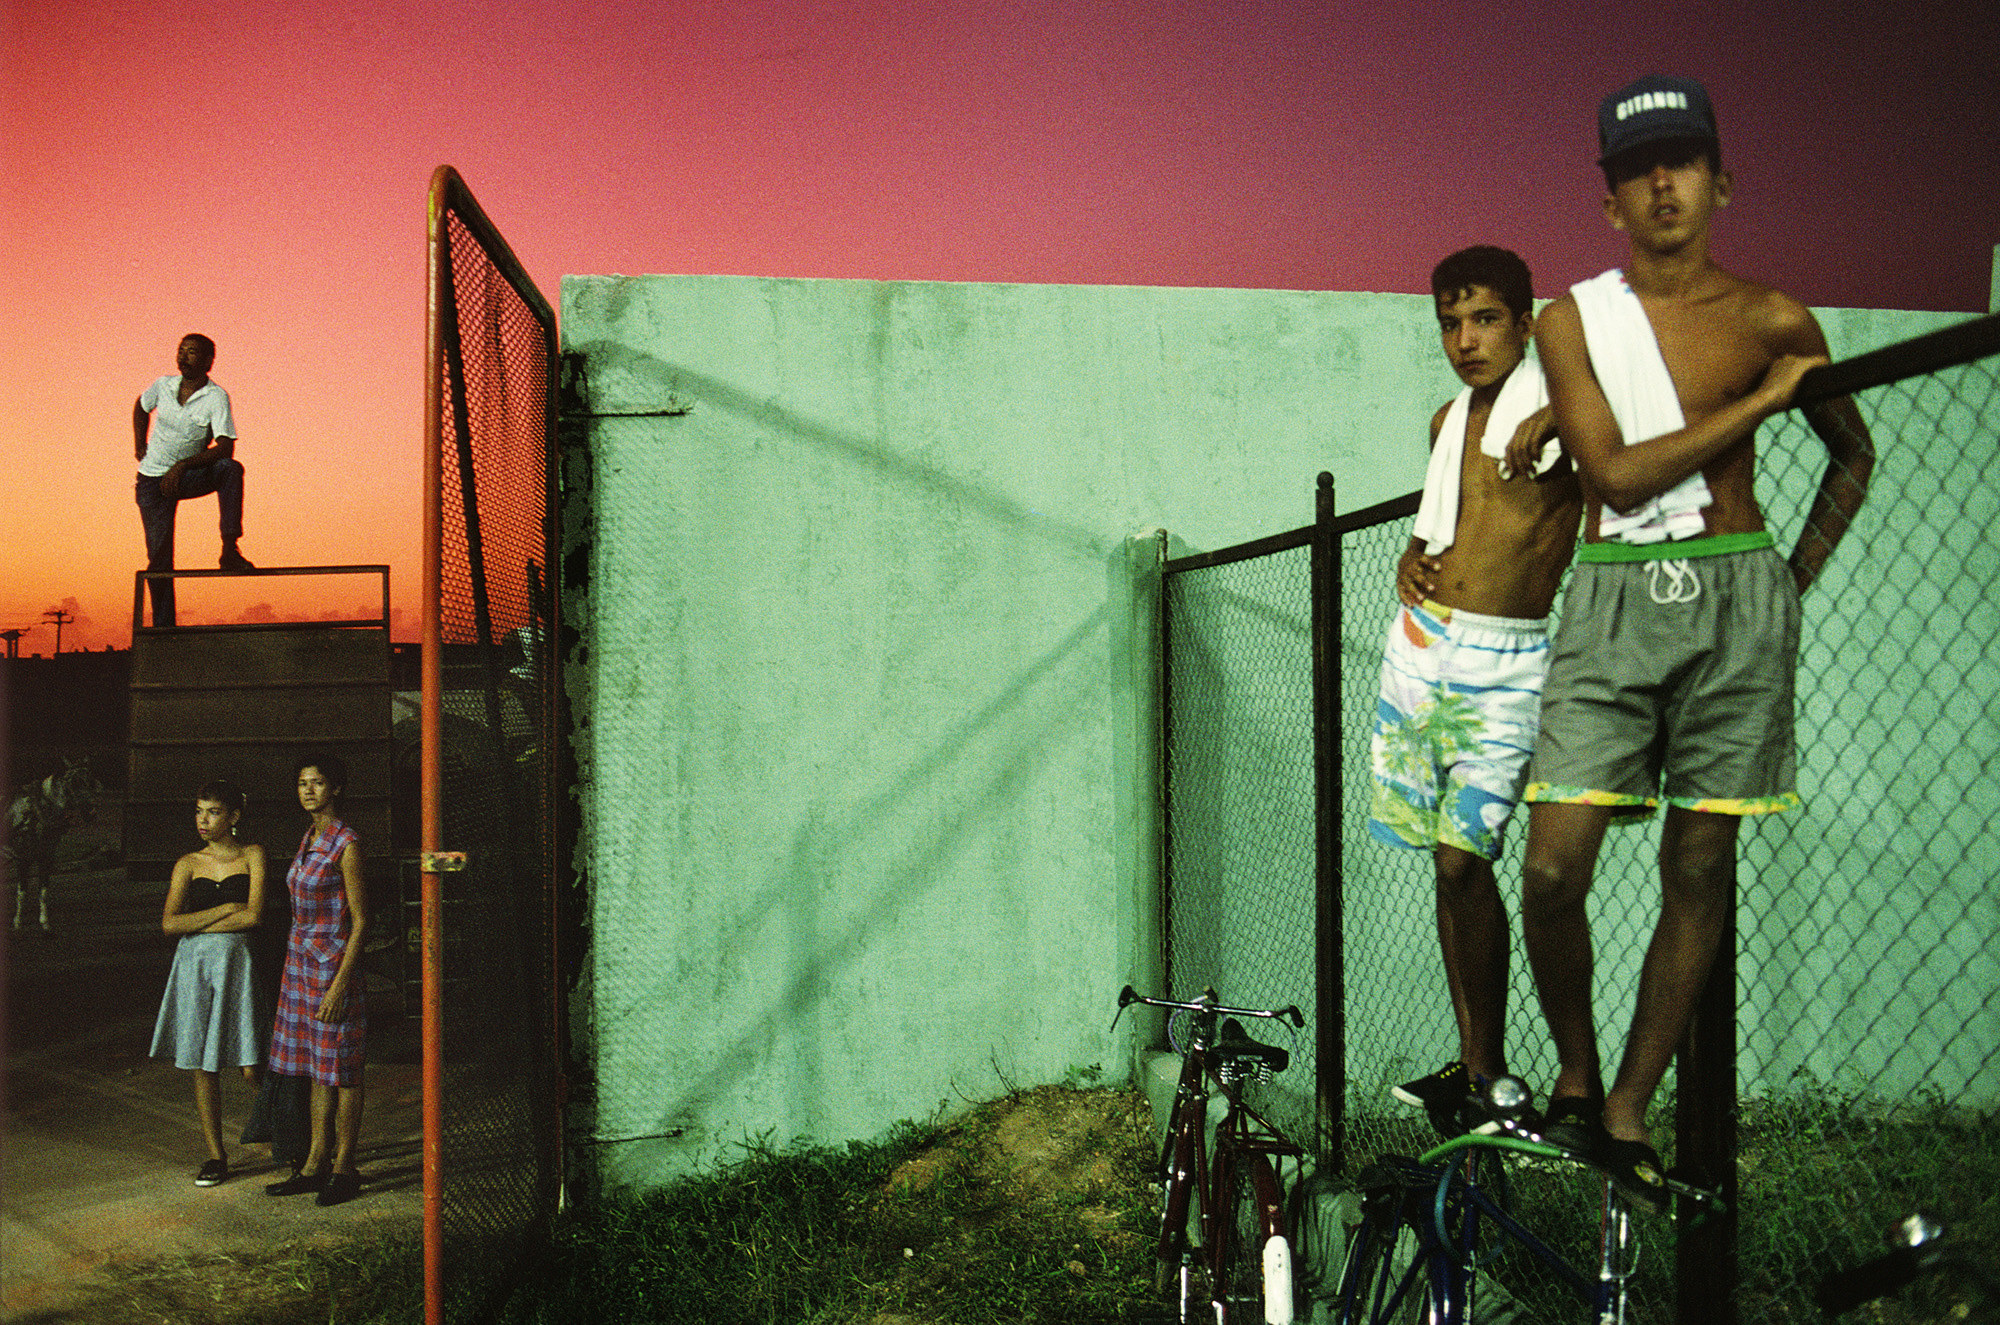 A man stands on a fence at left, two women stand below him, and on the right two young men stand on bikes by another fence